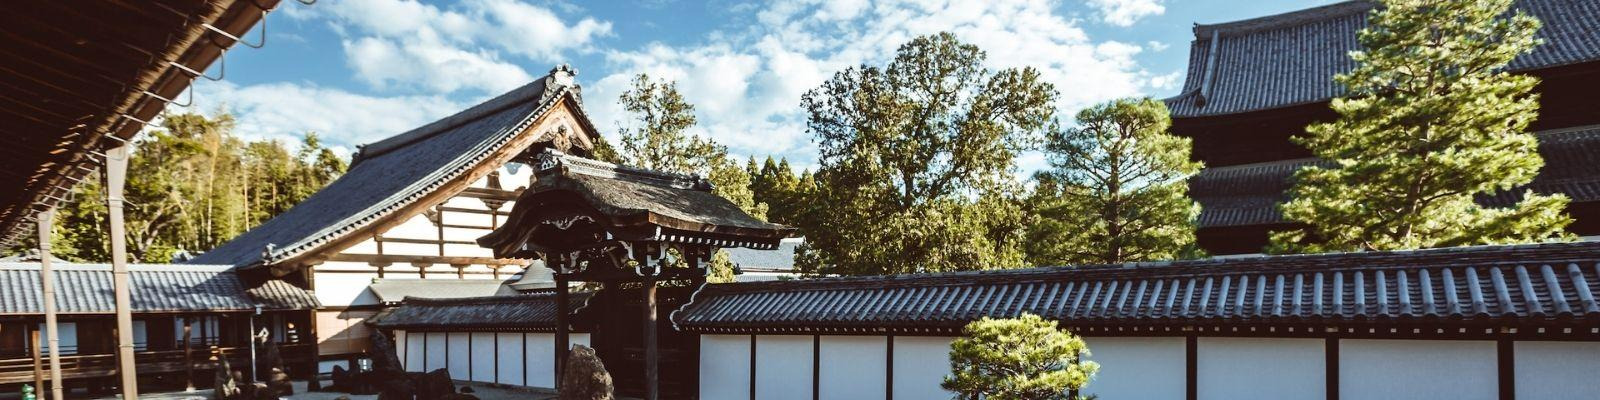 Visiting Kyoto for the First Time? Here's What to See and Do